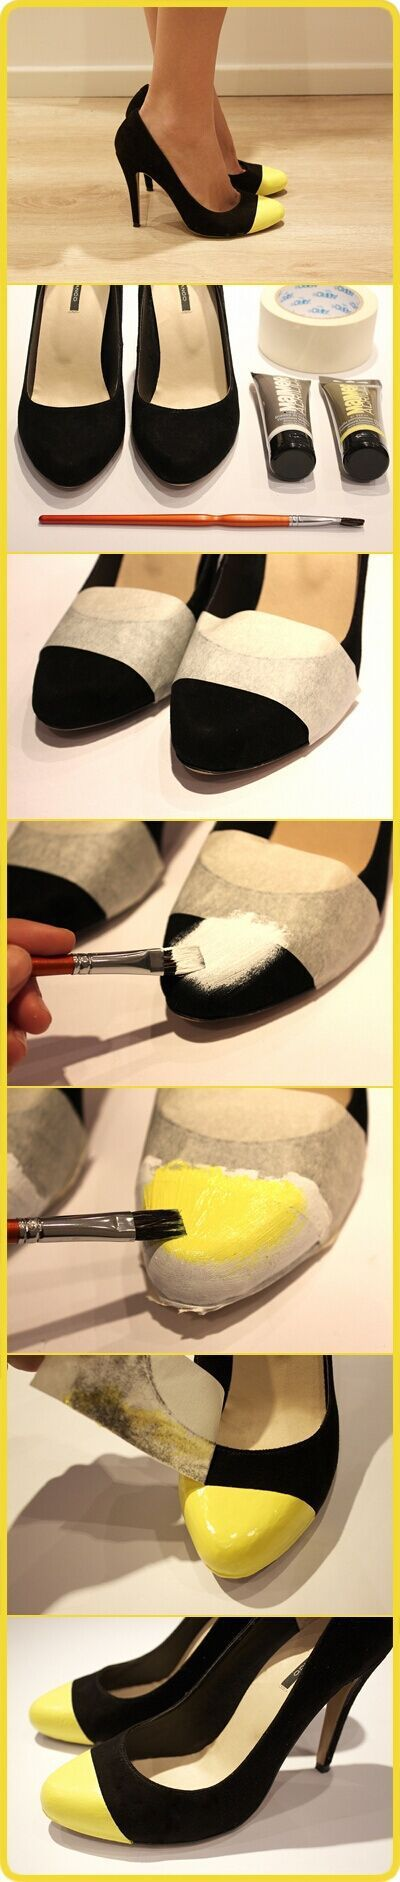 Great idea to restyle old shoes & add a little color!!